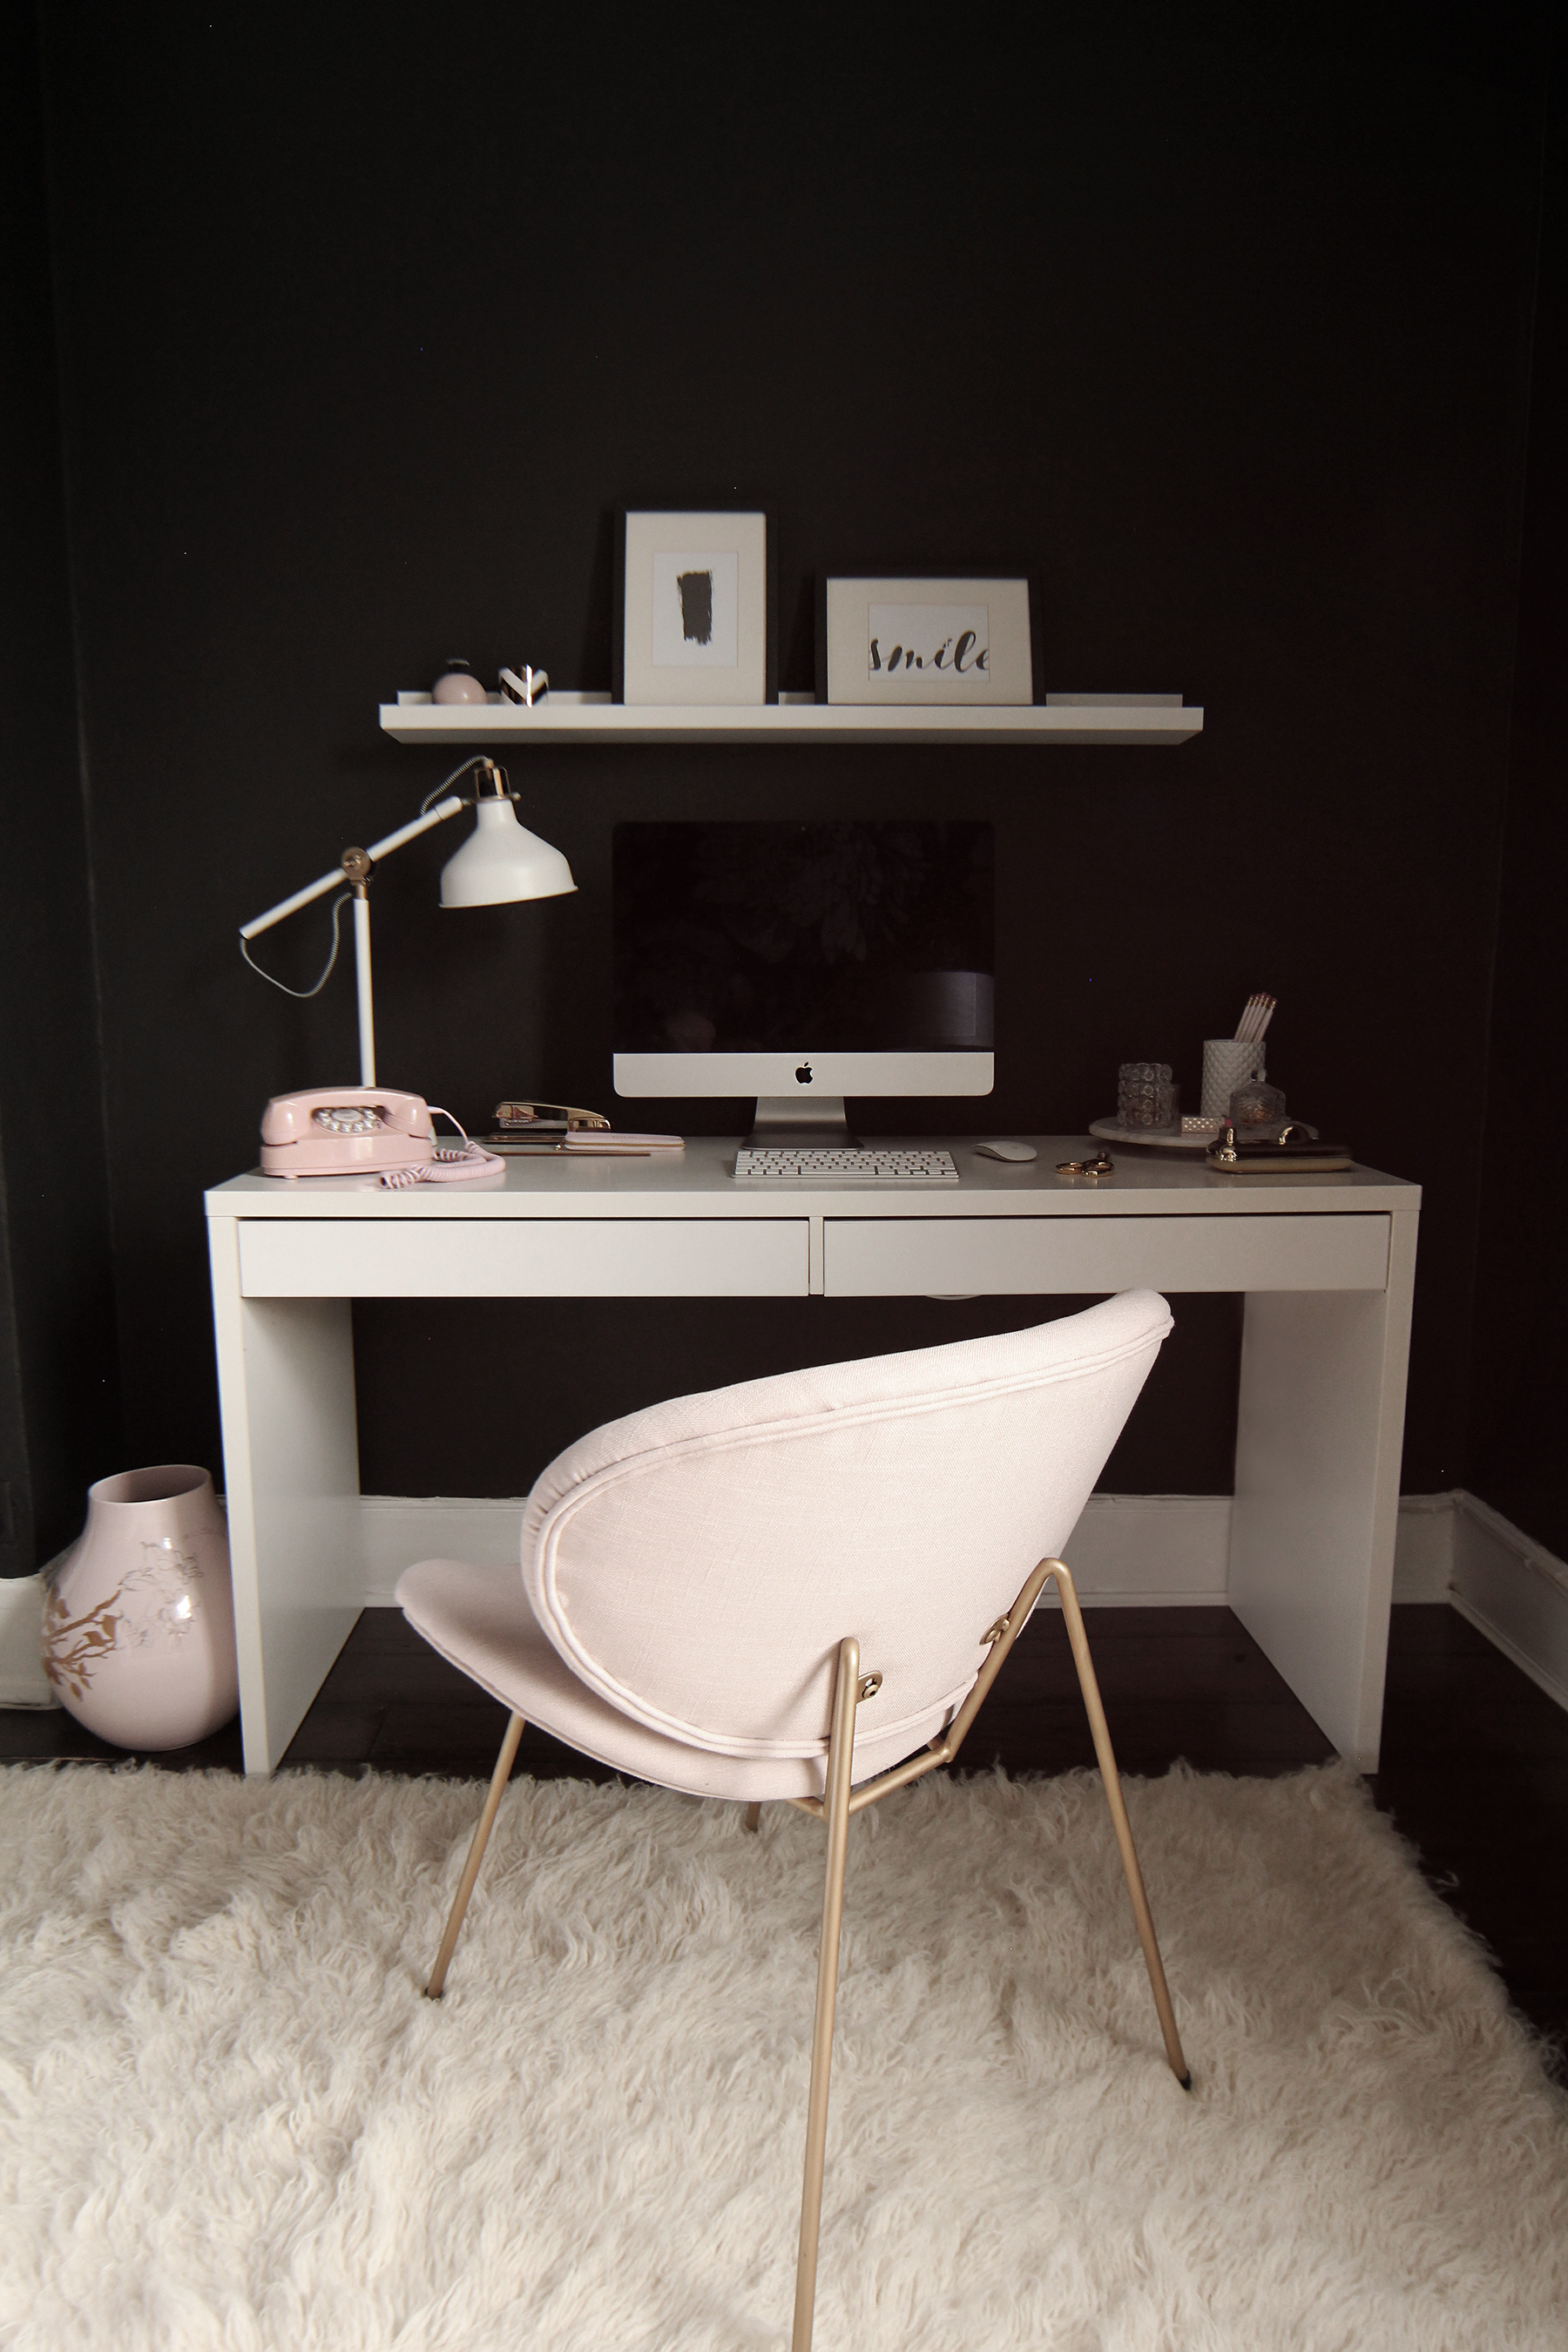 Preciously Me blog : One Room Challenge - Bedroom makeover reveal. Office